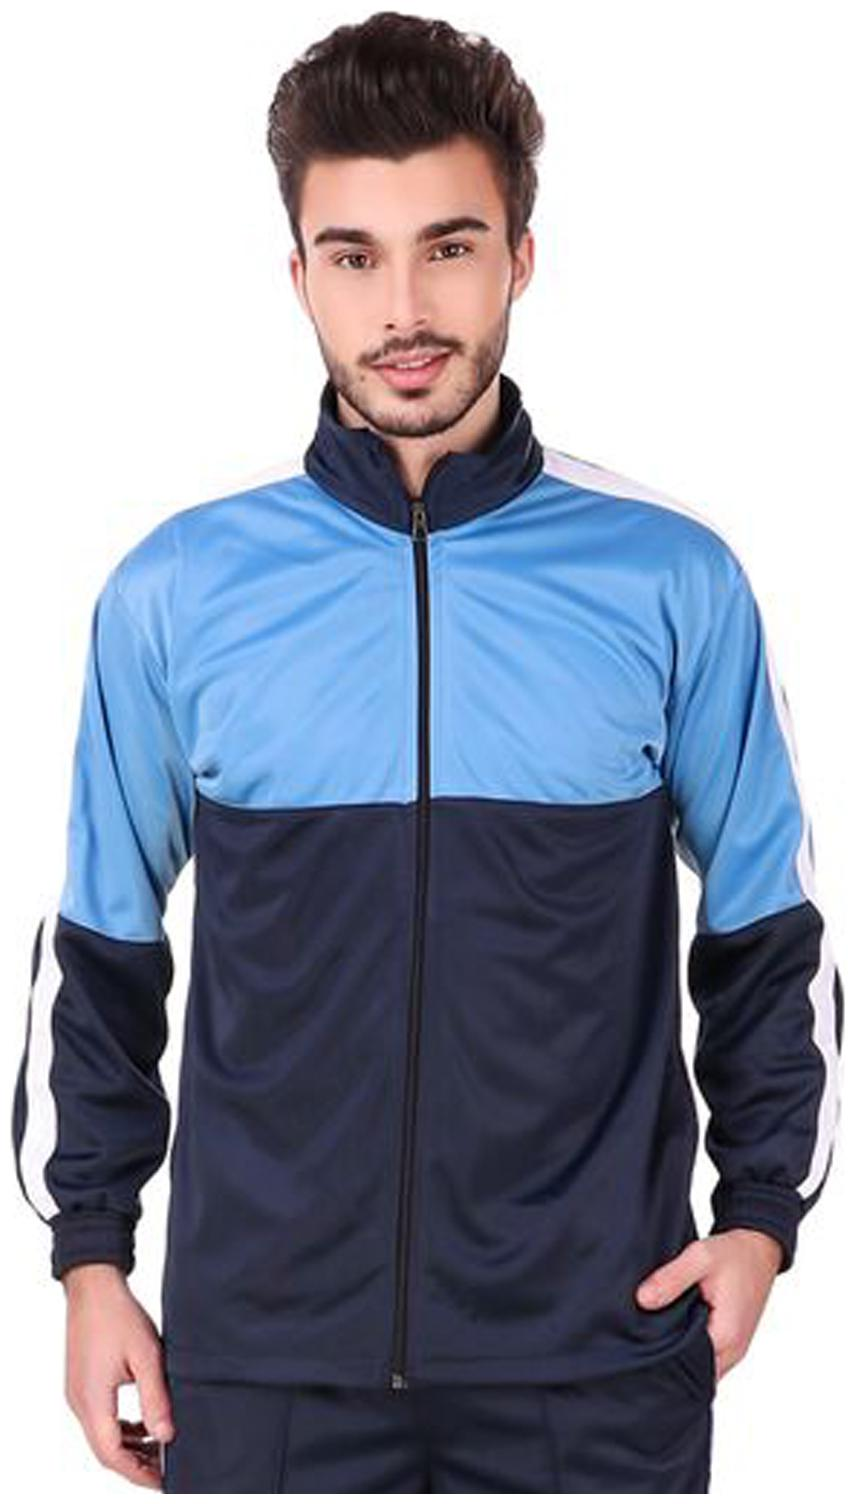 Fashion 7 Polyester Sports Jacket for Men - Track Jacket | Colorblocked...